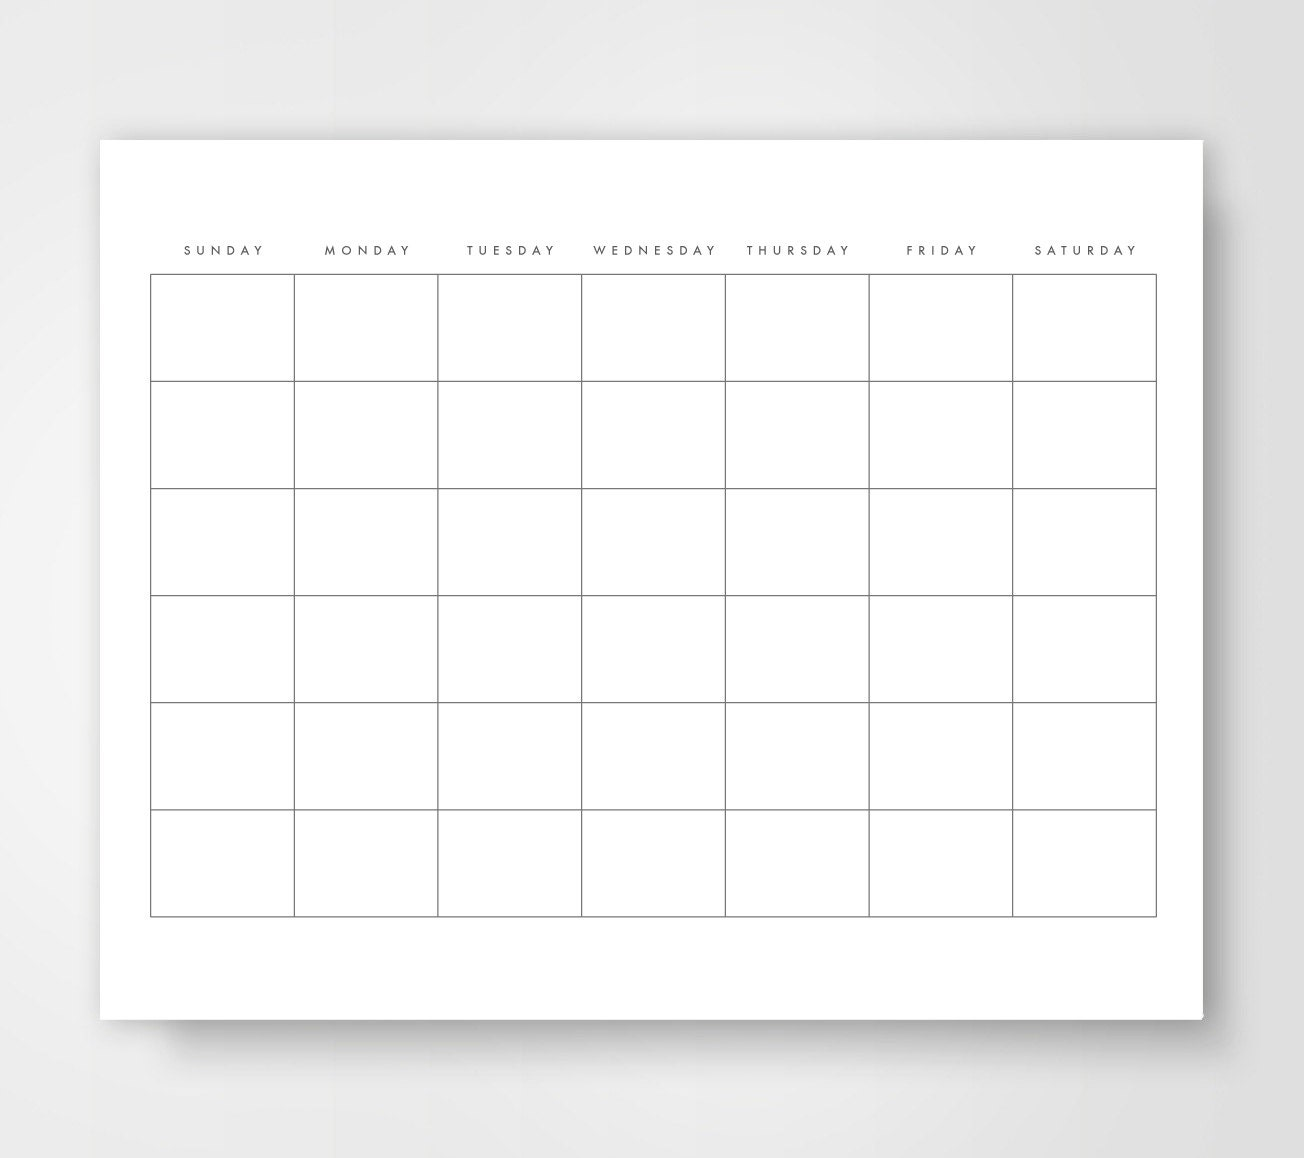 Old Fashioned image with regard to blank planner